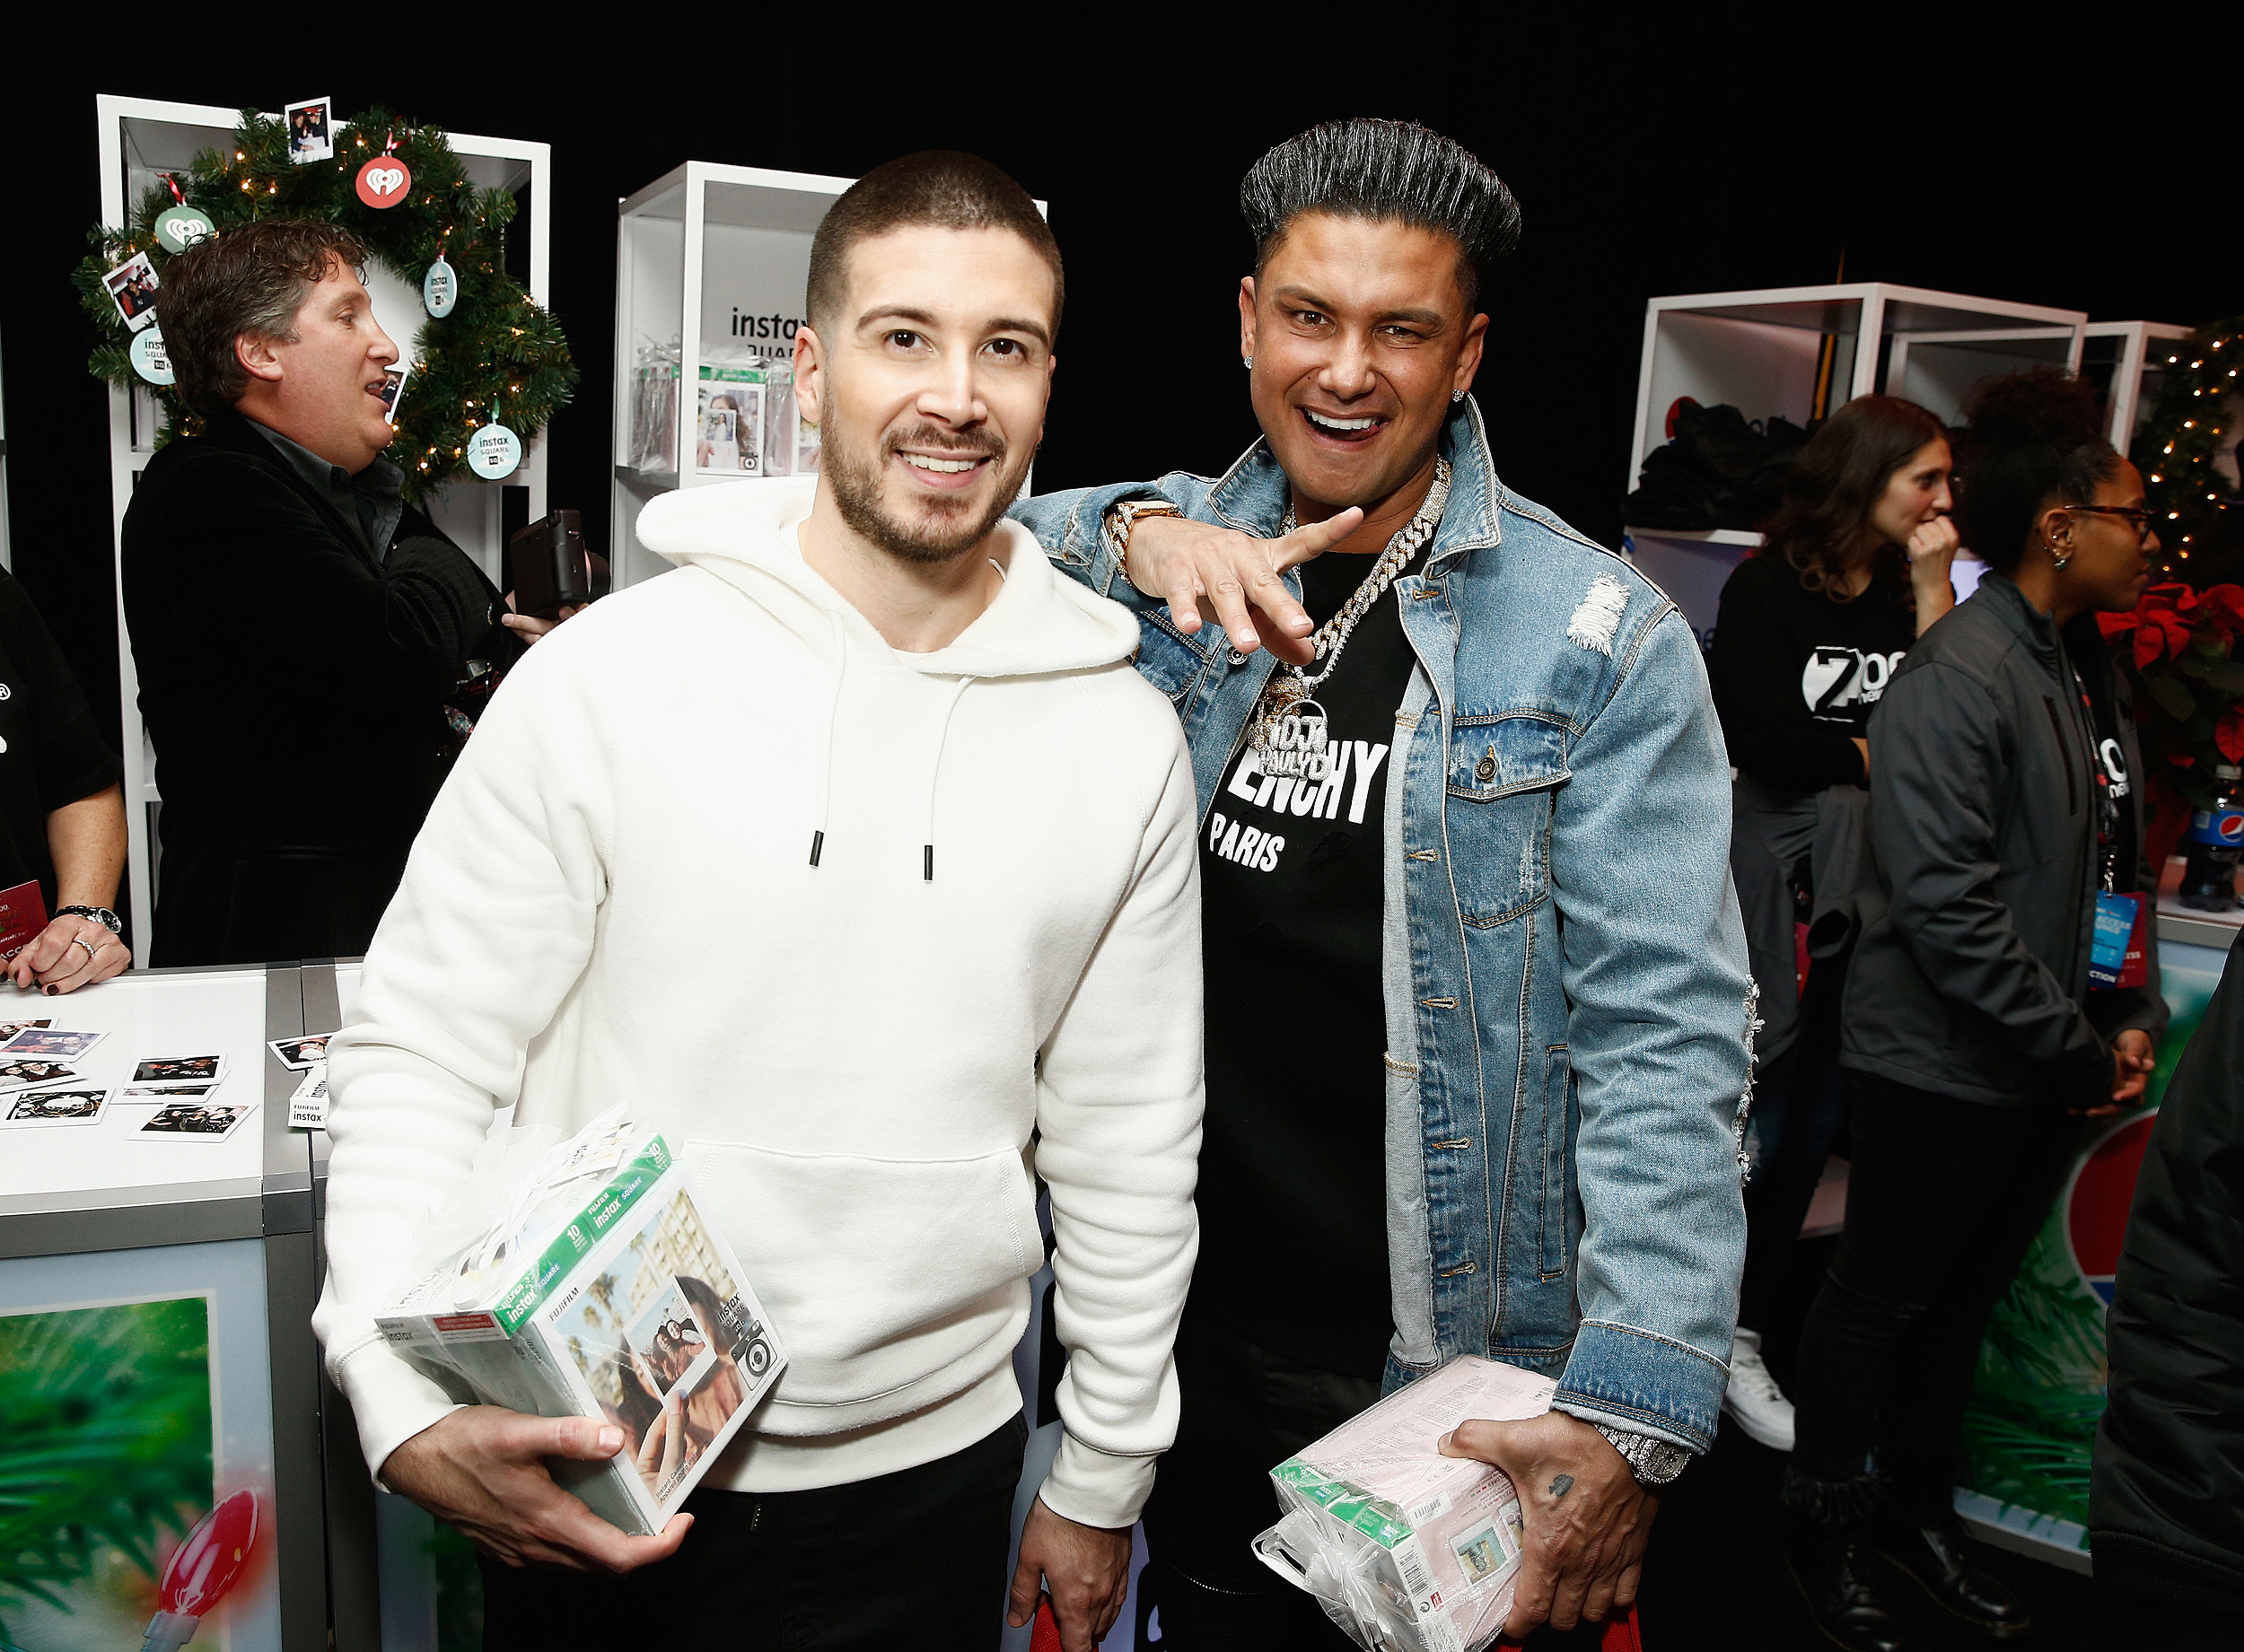 Vinny and pauly d dating